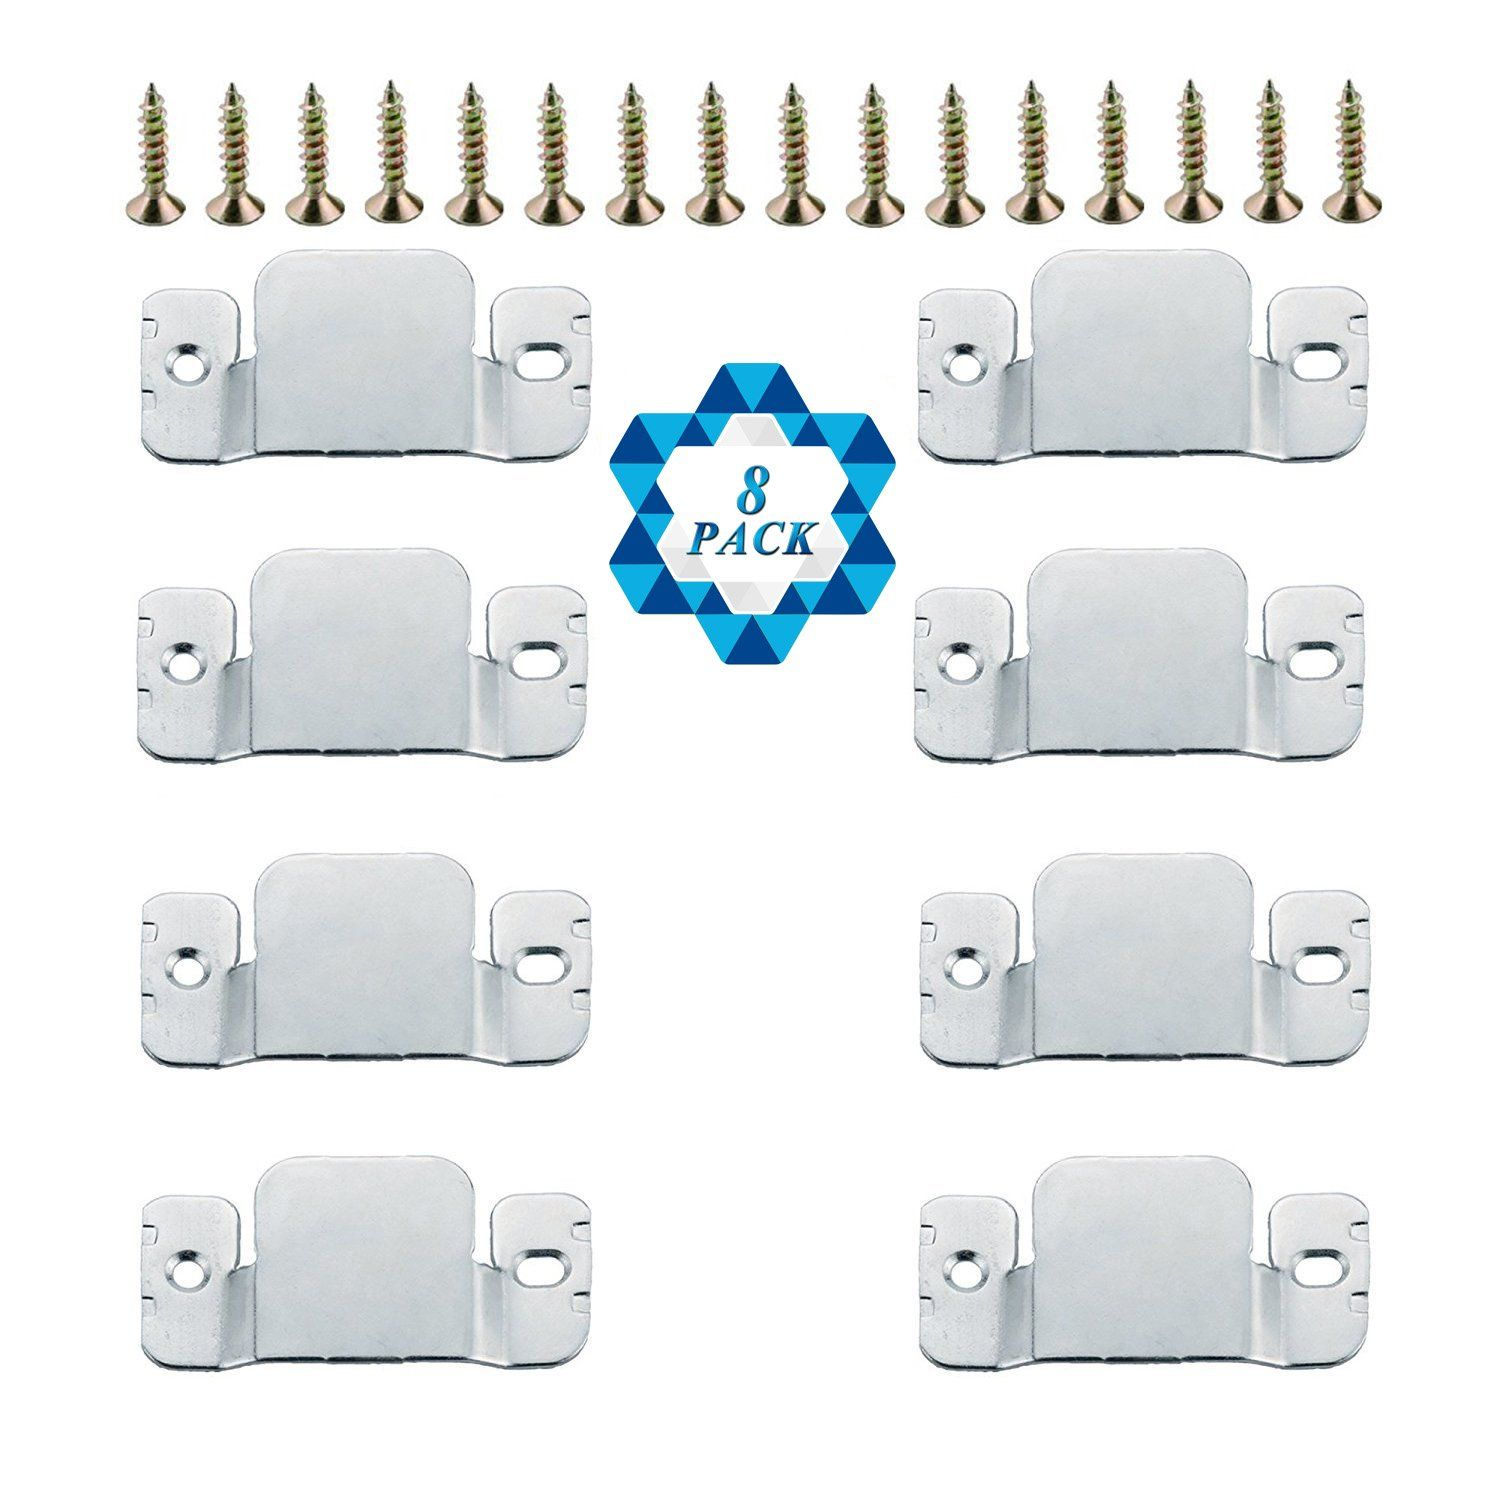 Sotogo 8 Pcs Sectional Connectors Furniture Interlock Style Metal Sectional Sofa Connectors With Screws In 2020 With Images Sectional Sofa Furniture Design Sectional